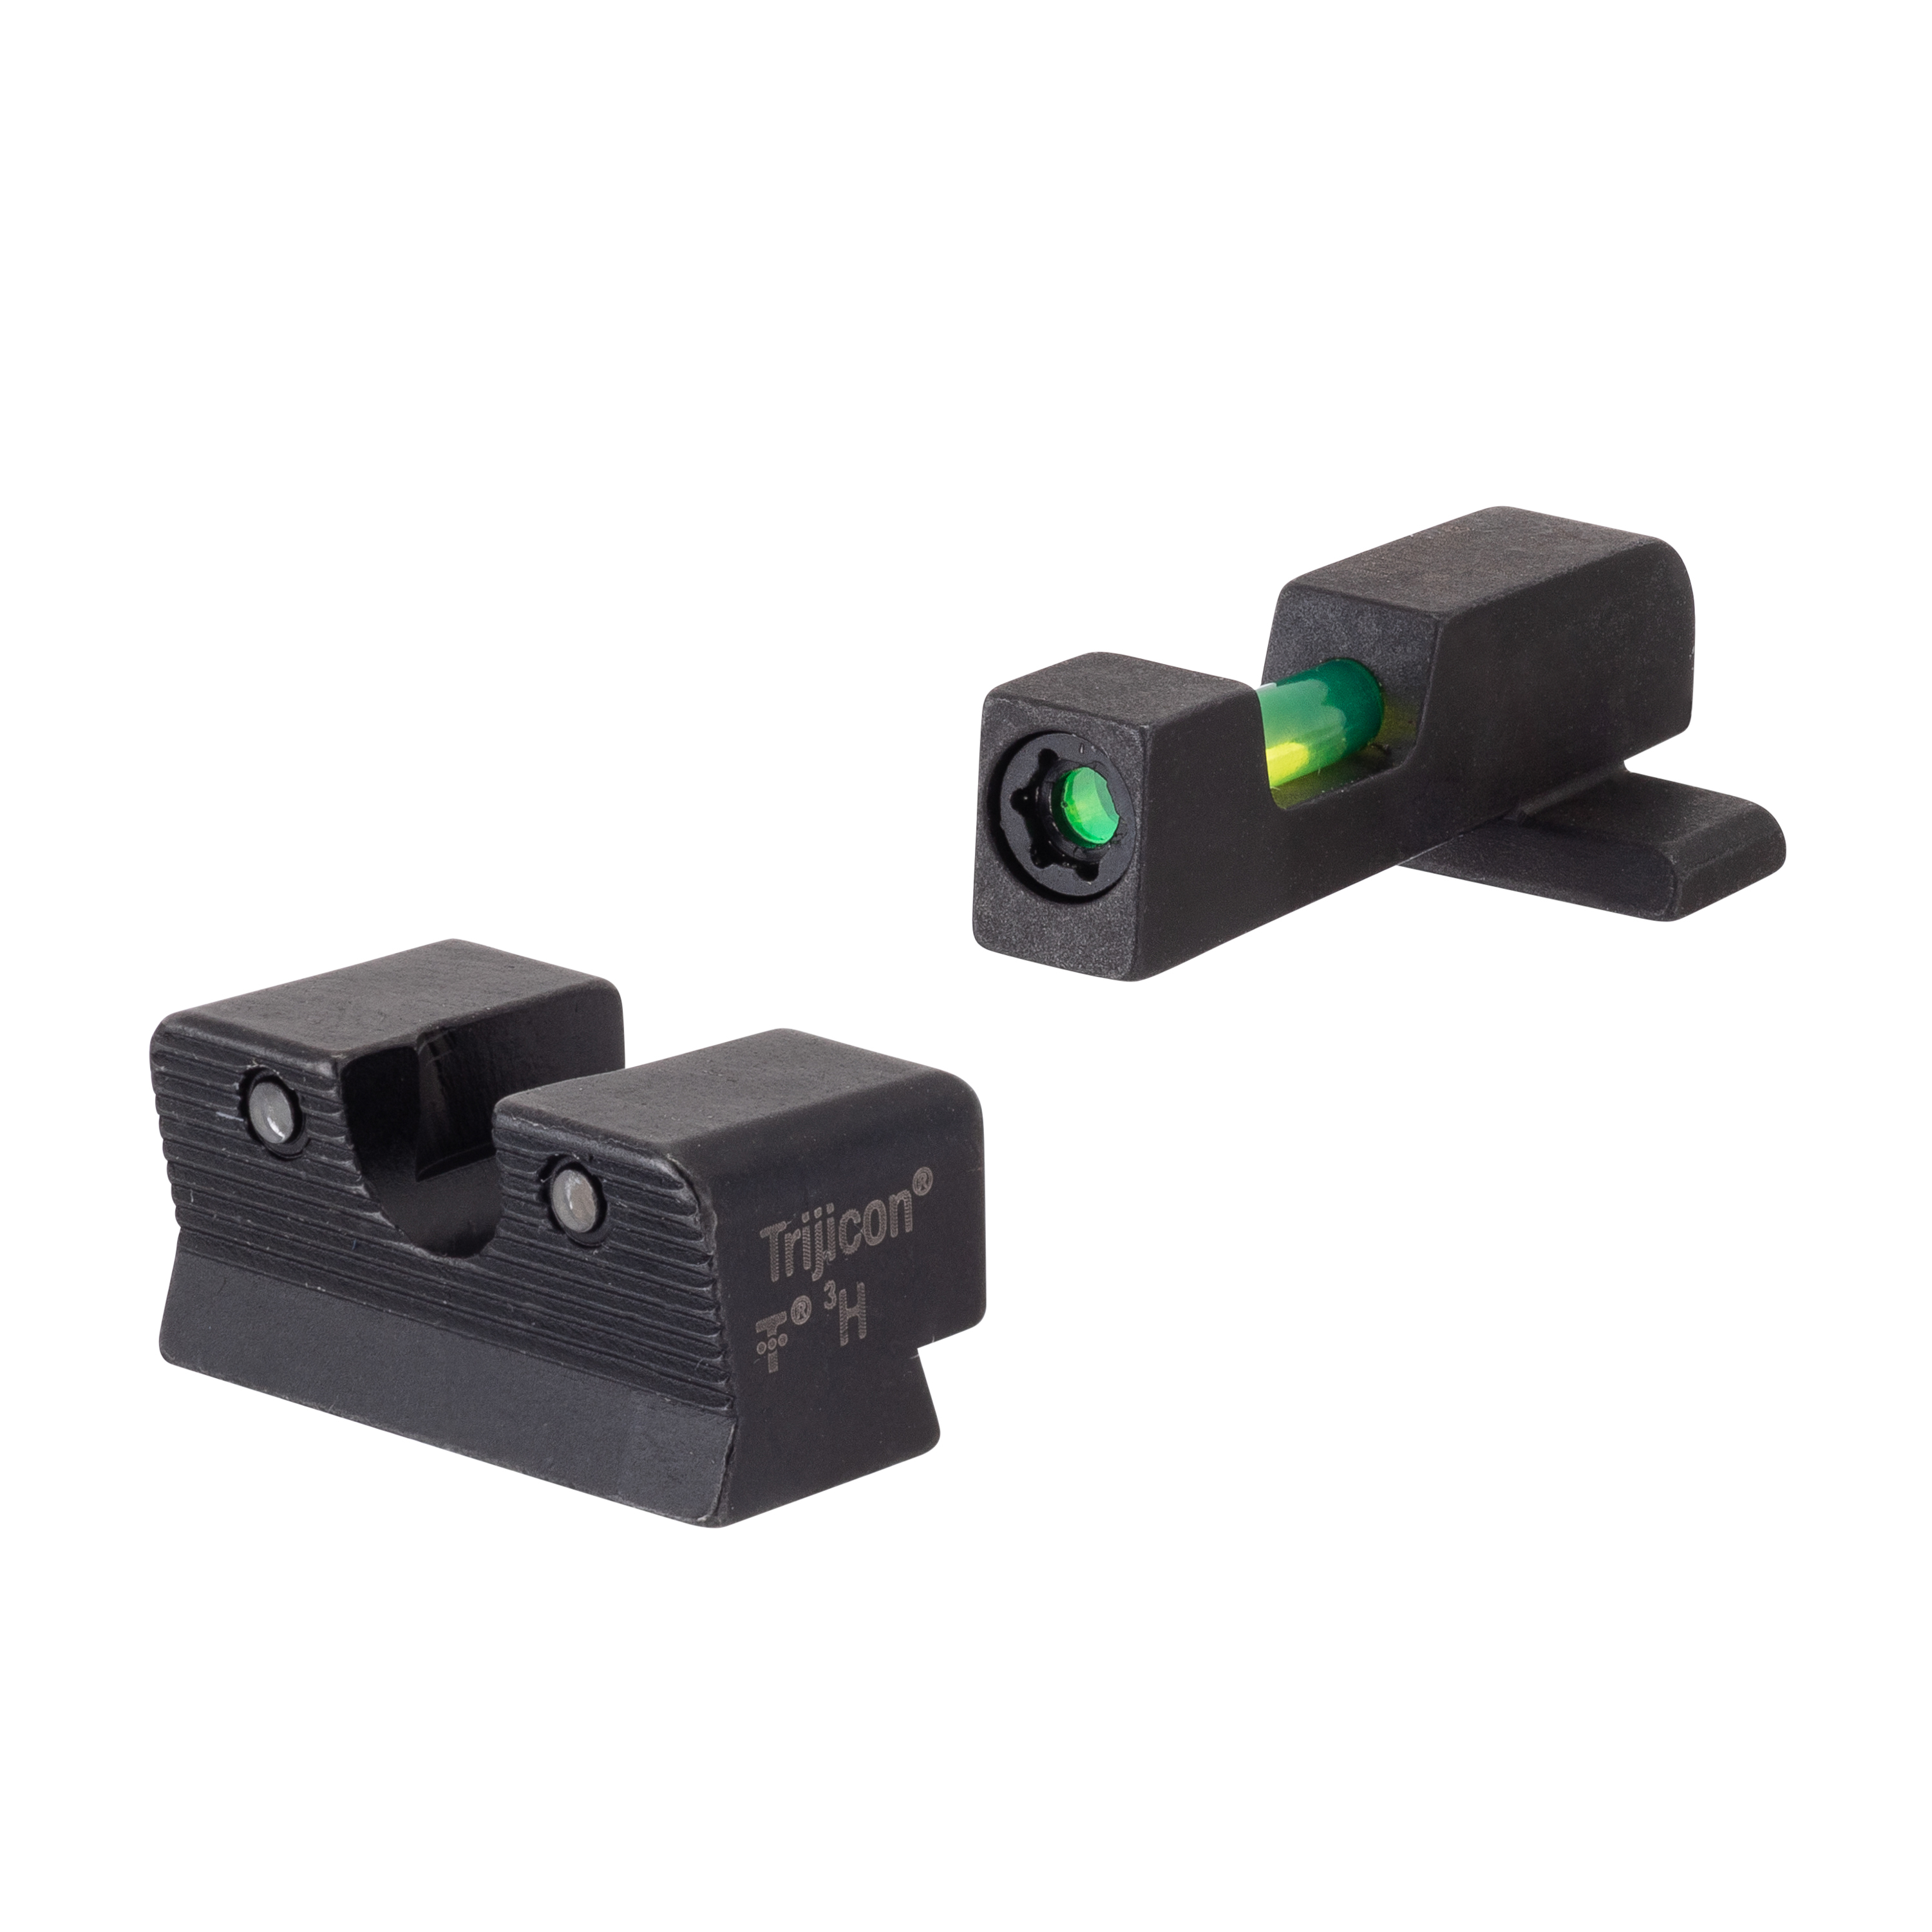 Trijicon DI™ Night Sight Set - for Springfield Armory<sup>®</sup> XD-S<sup>®</sup>, XD-E